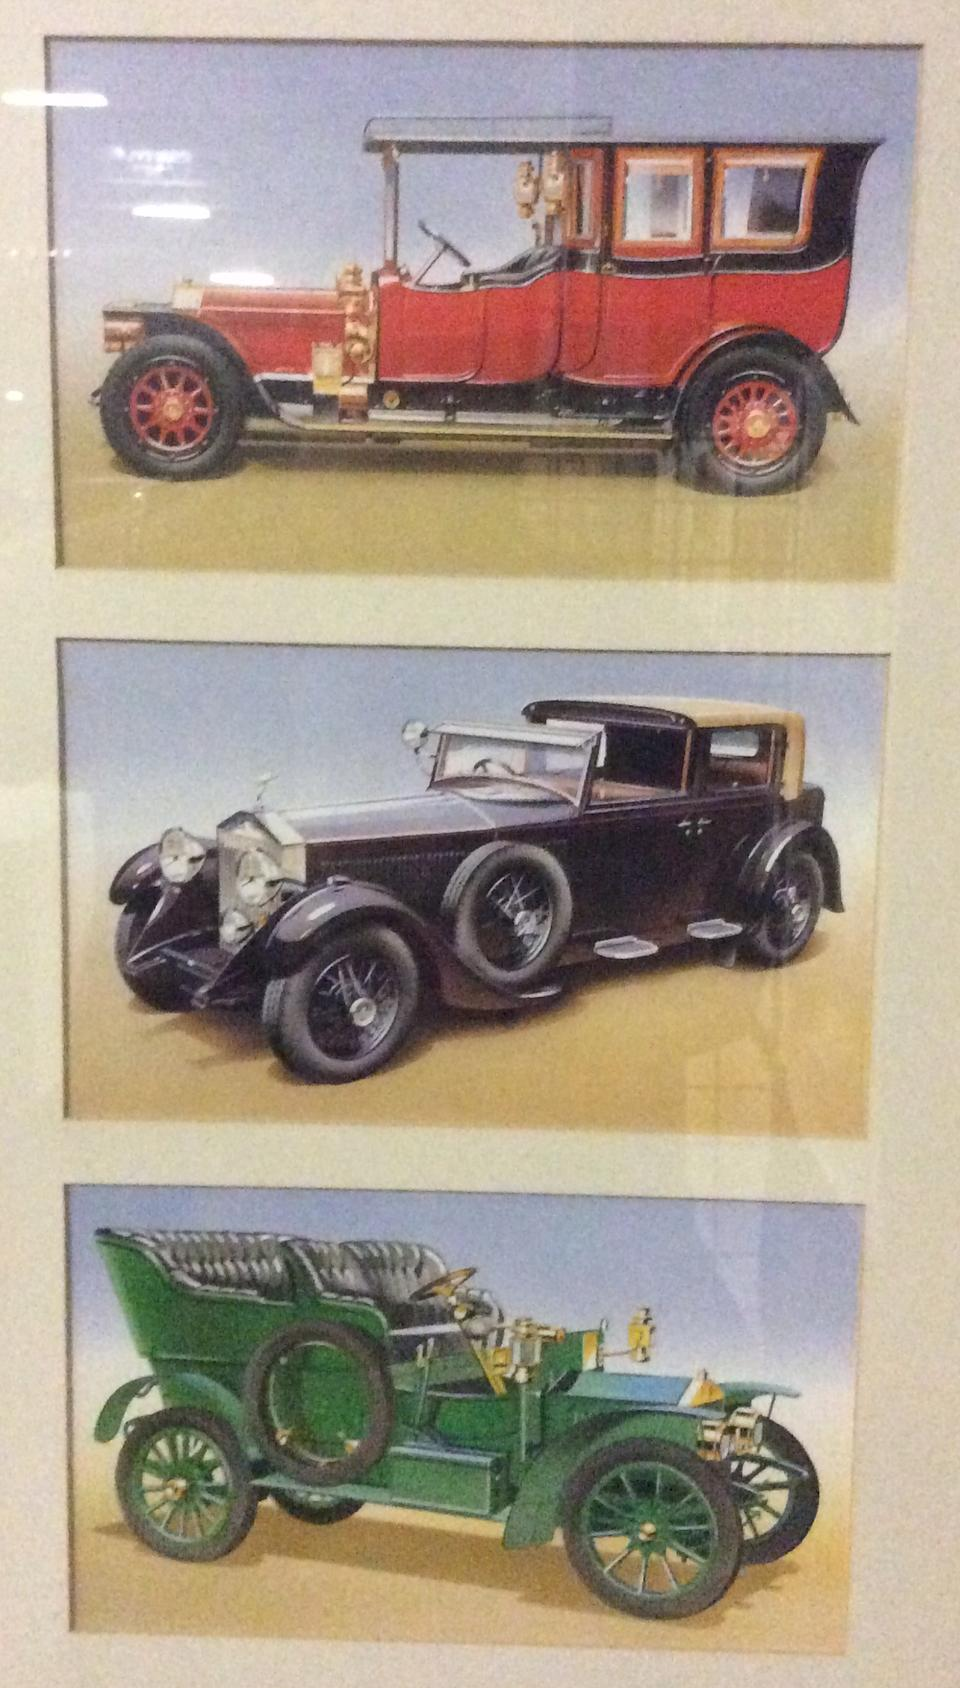 2 Nicely Framed Sets of Rolls-Royce and Bentley Limited Edition Postcards